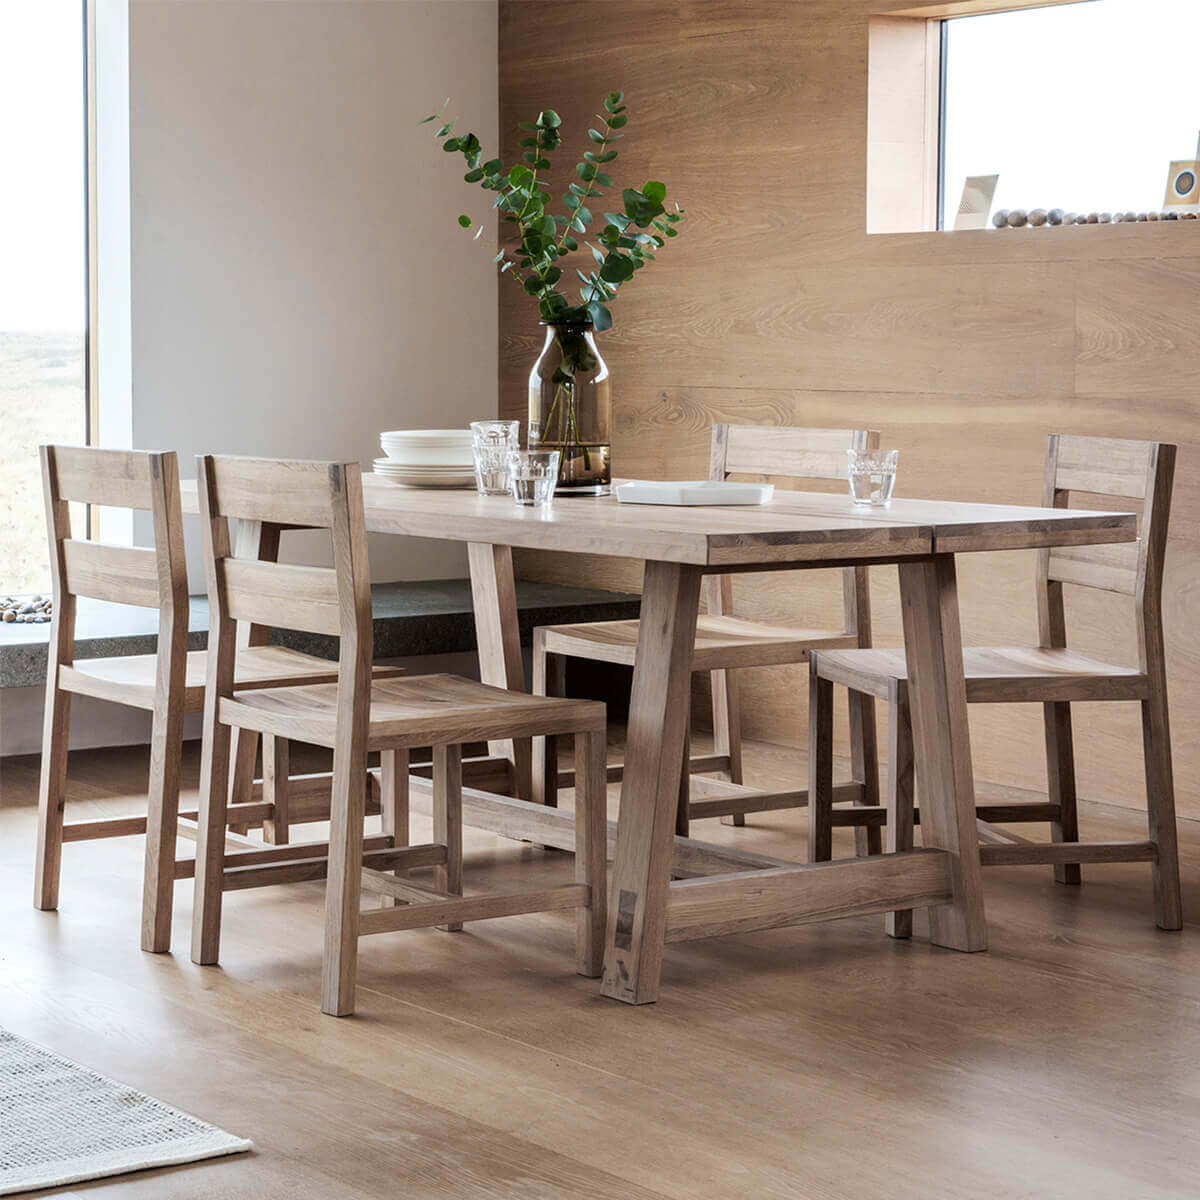 Narrative Solid Oak Plank Dining Set (Dining Set Size: 6 Seat table with 4 chairs and 1 bench)